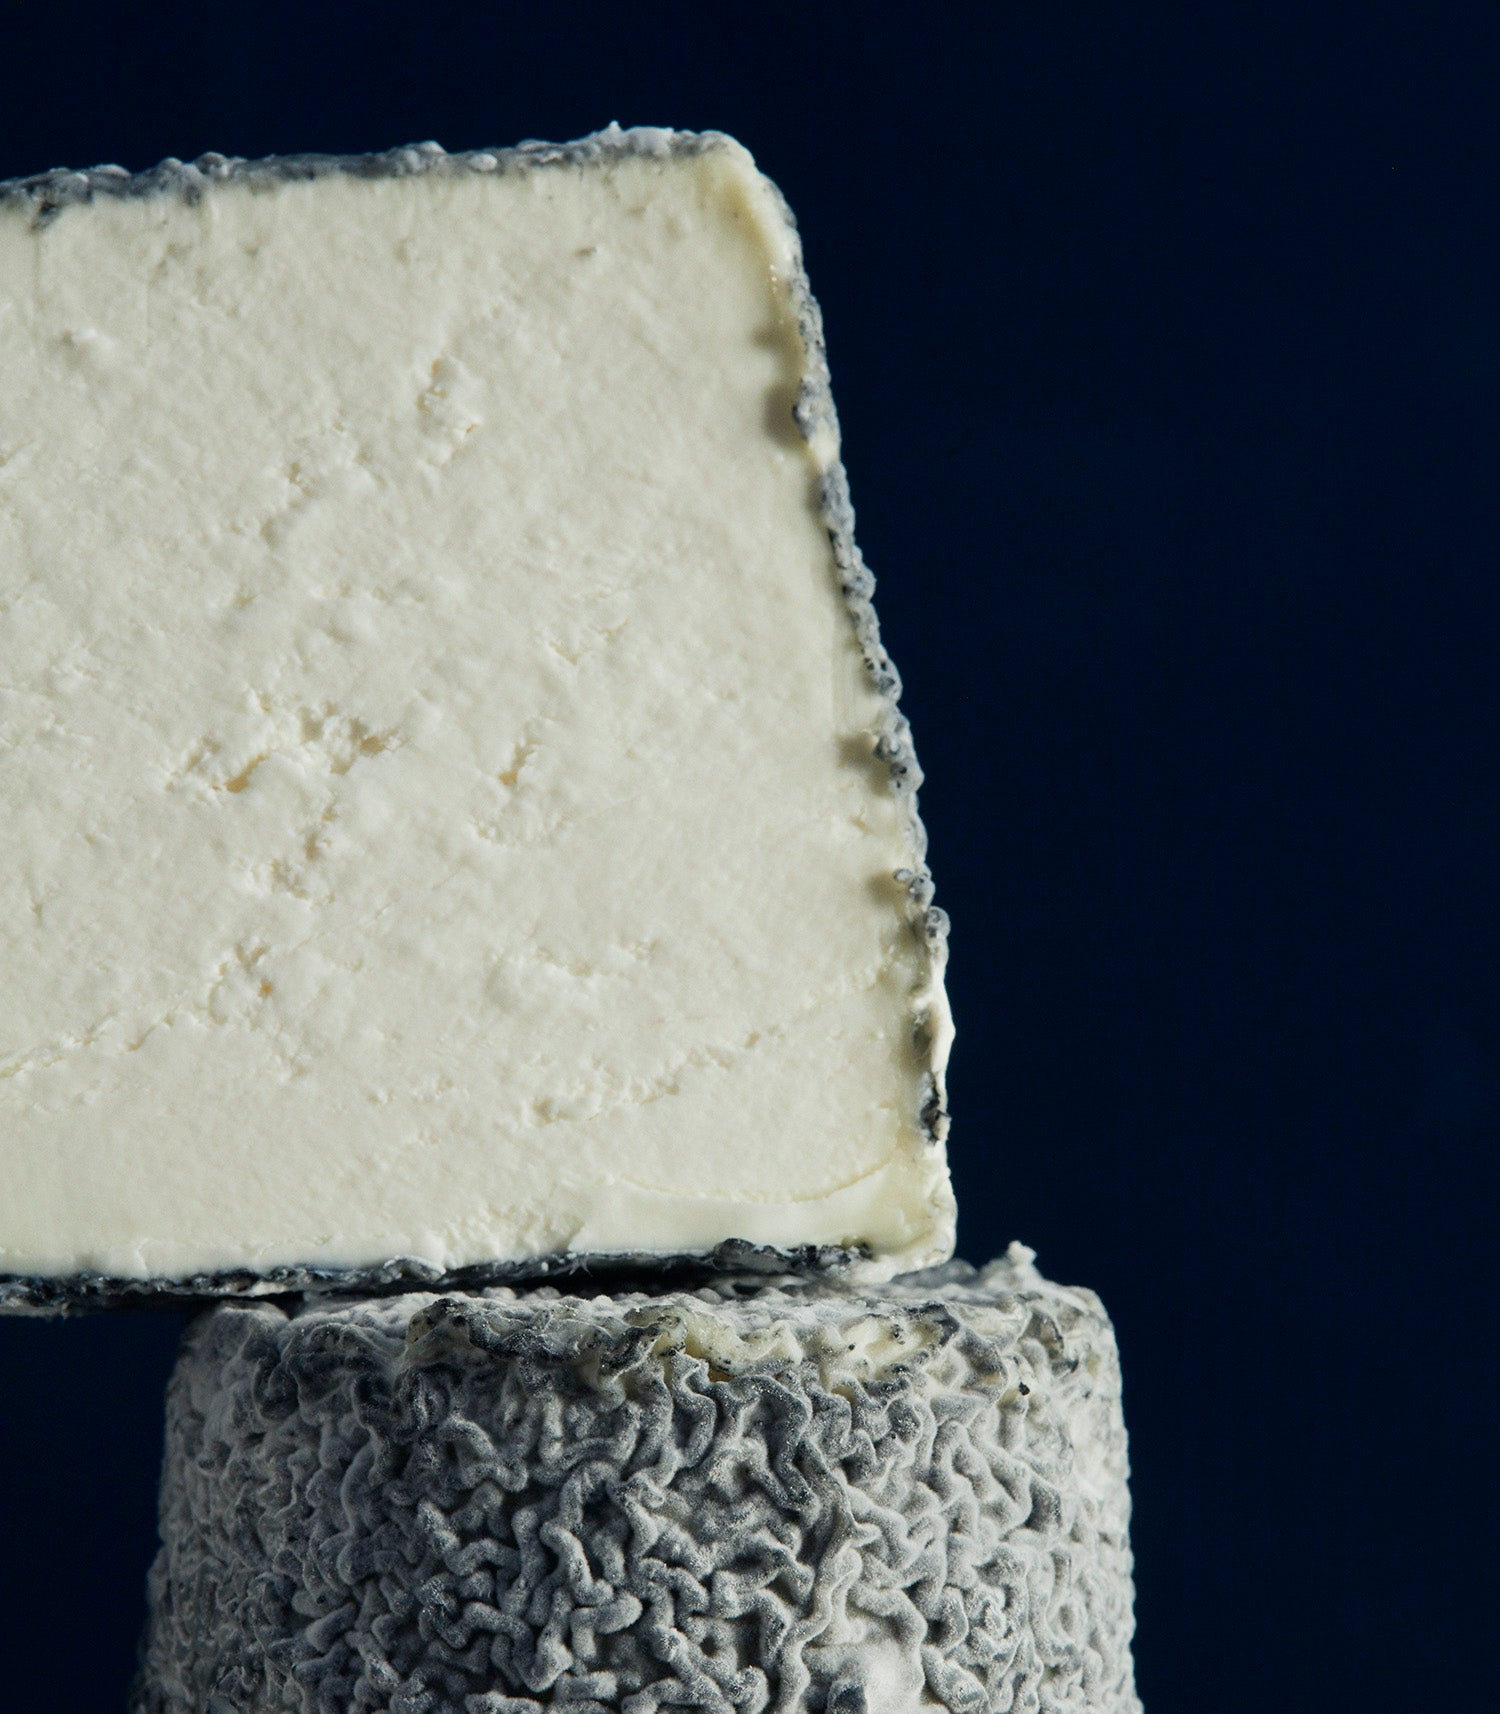 Close up of a cut turret-shaped Dorstone goat's cheese with a mould-covered grey wrinkly rind and delicate white paste